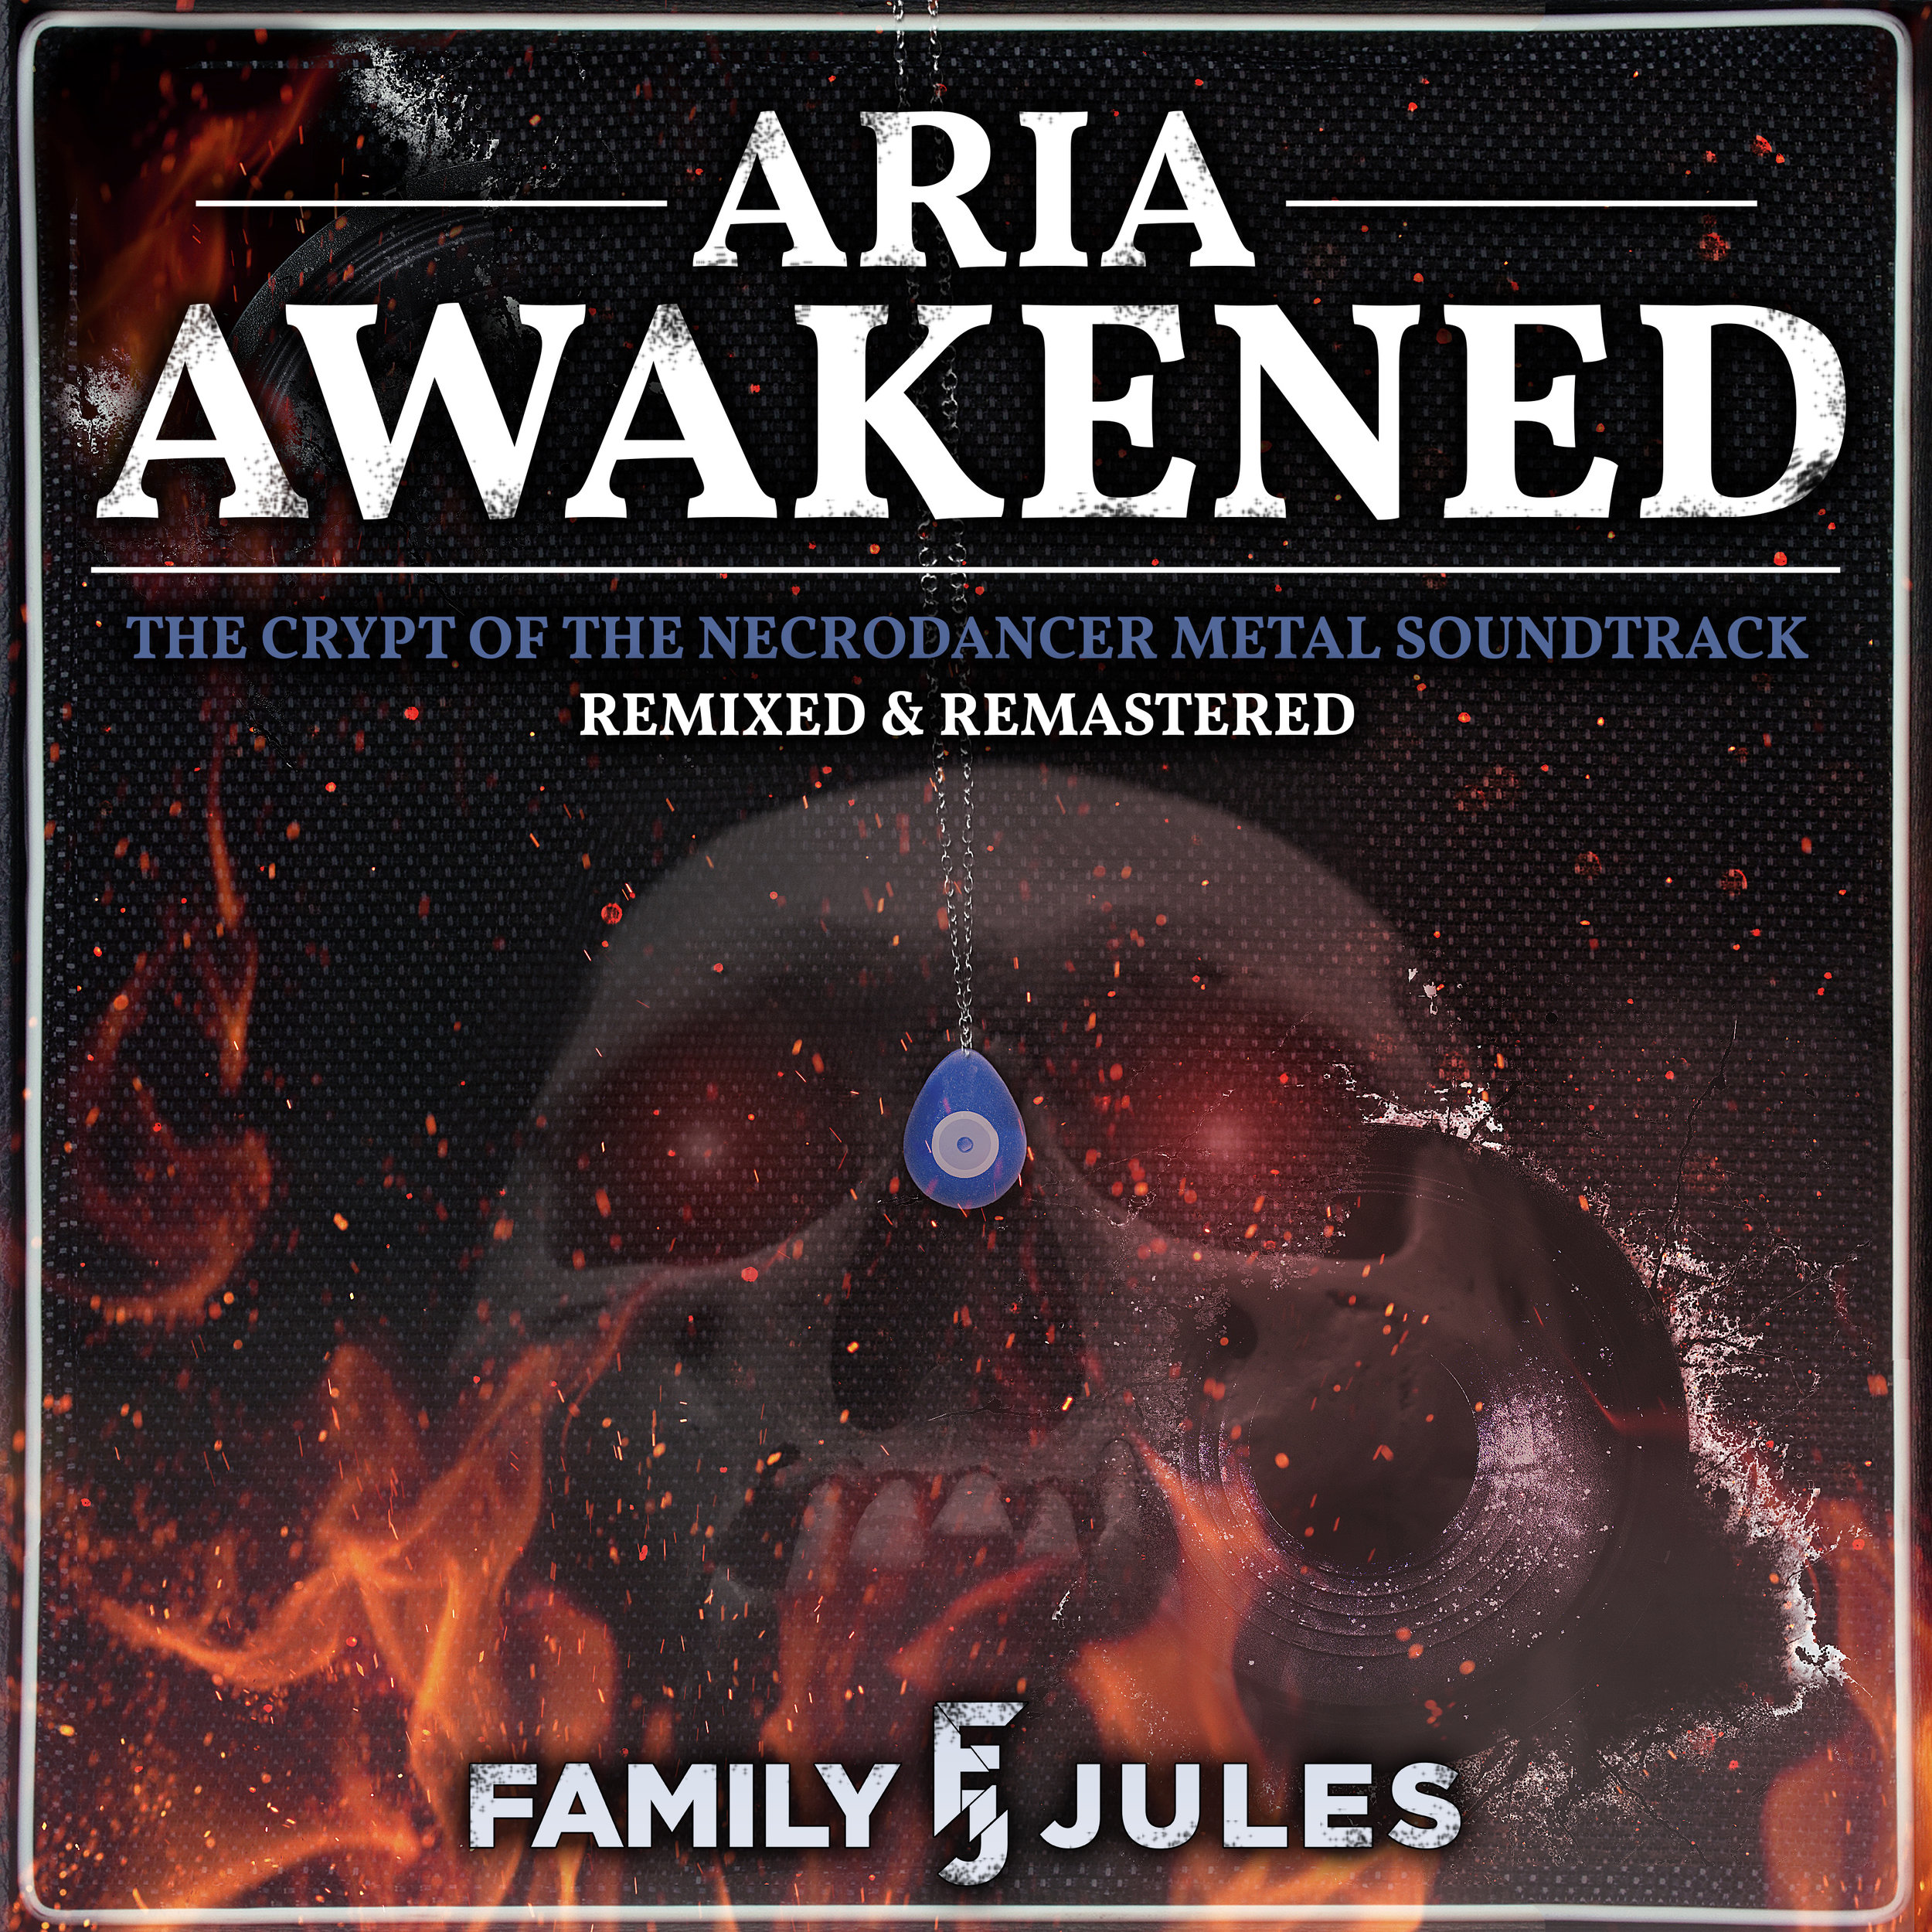 Aria Awakened Album Cover s.jpg